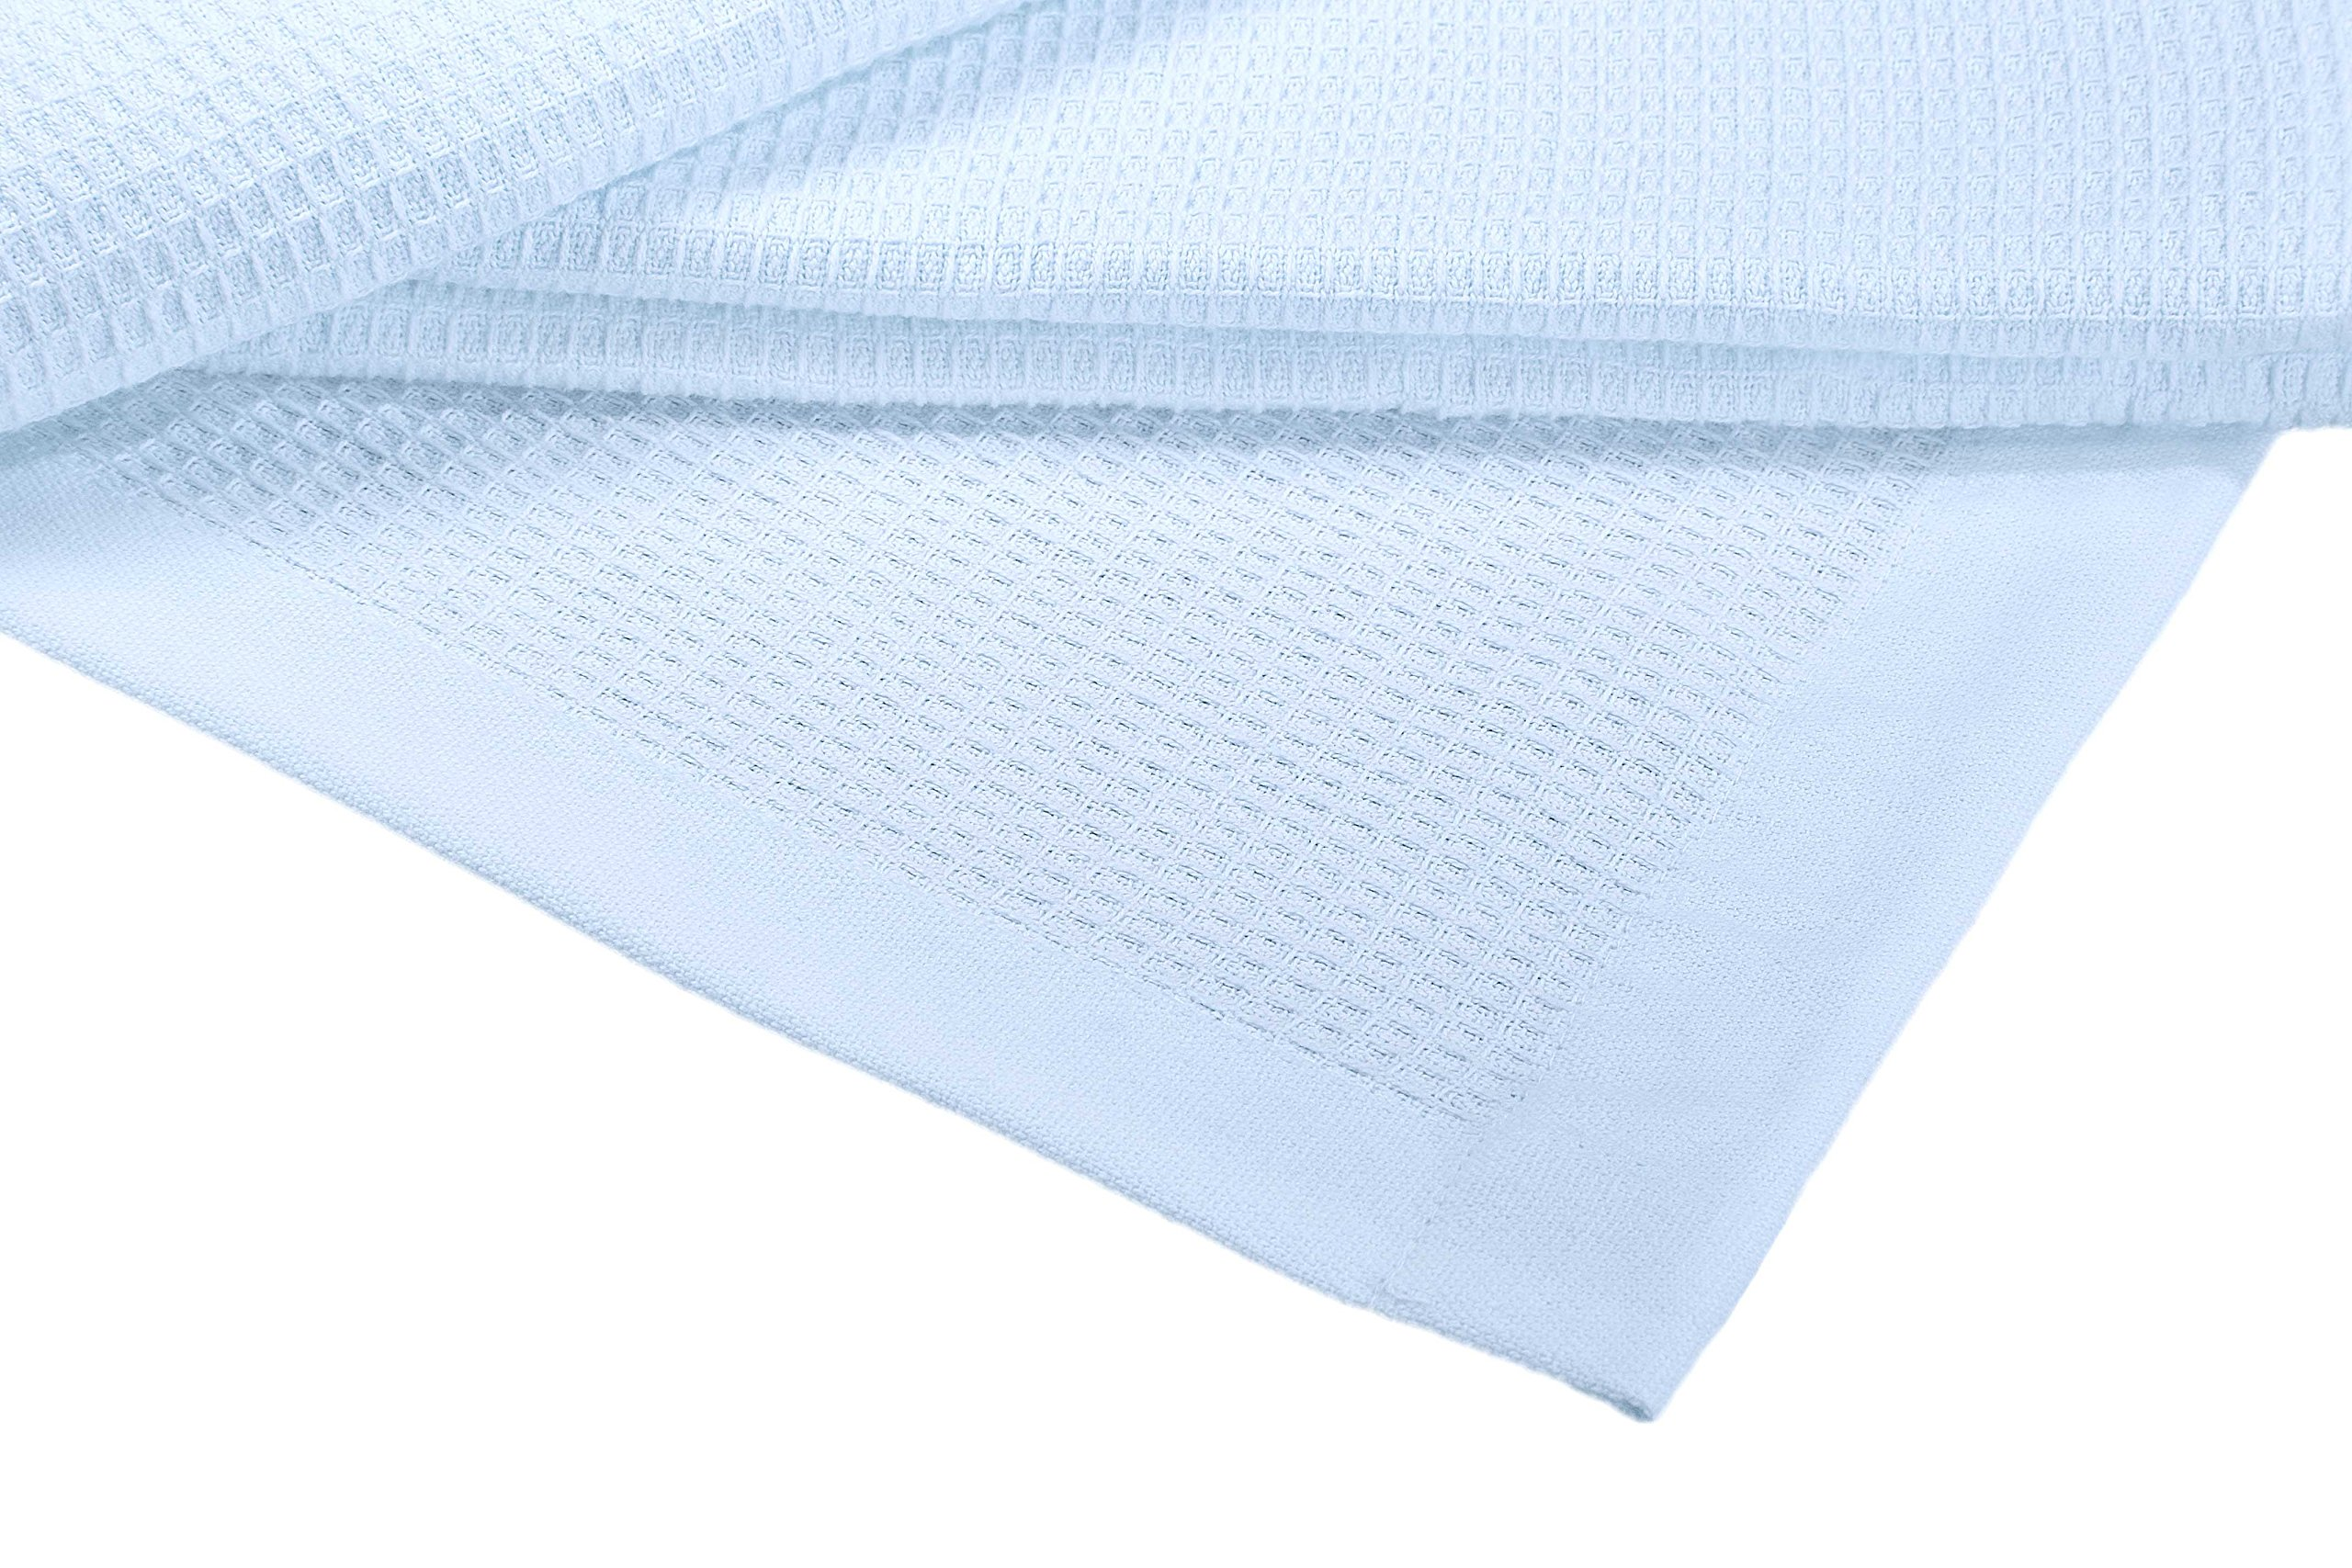 Crover Collection All Season Thermal Waffle Cotton Queen Blanket 90''x90'' Cashmere Blue with Deep Plain Edge Border Durable and Soft